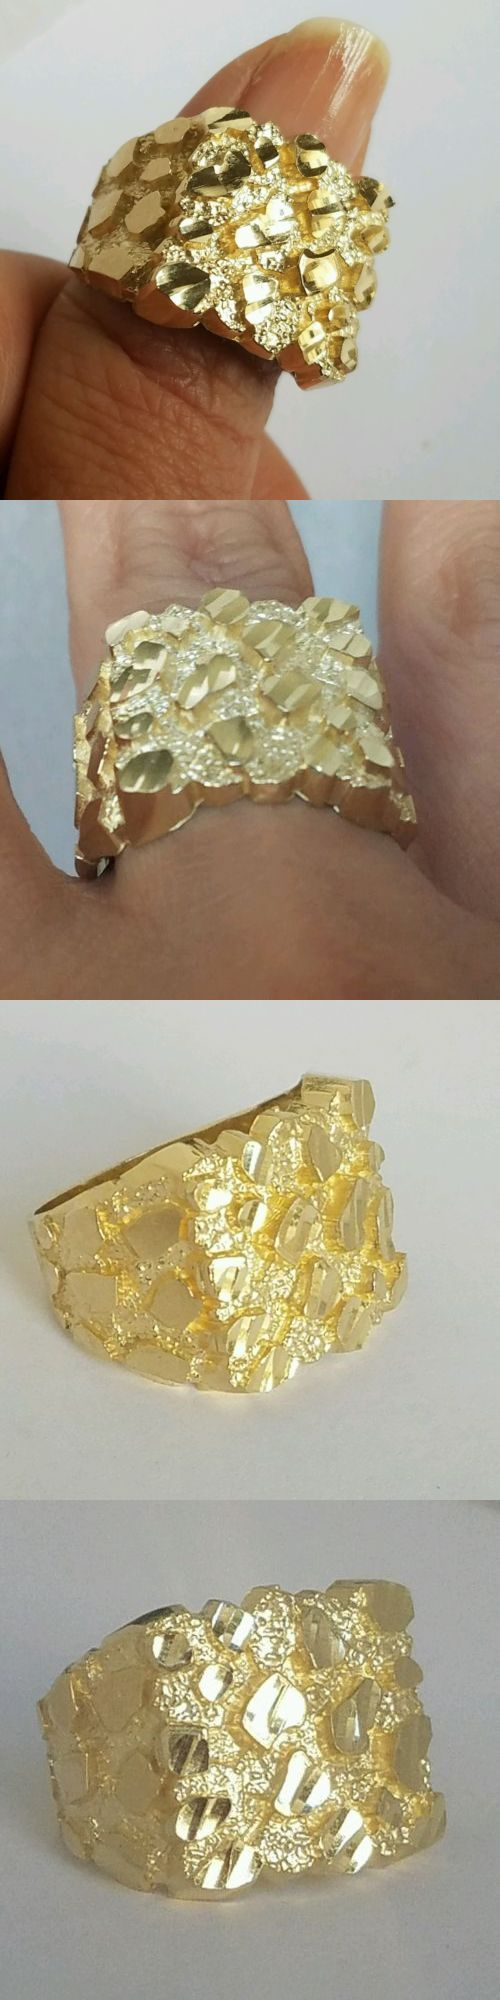 Men Jewelry Big Men S 10k Yellow Gold Nugget Ring Size 9 10 11 12 Buy It Now Only 295 On Ebay Gold Nugget Ring Sweet Jewelry Nugget Bracelet